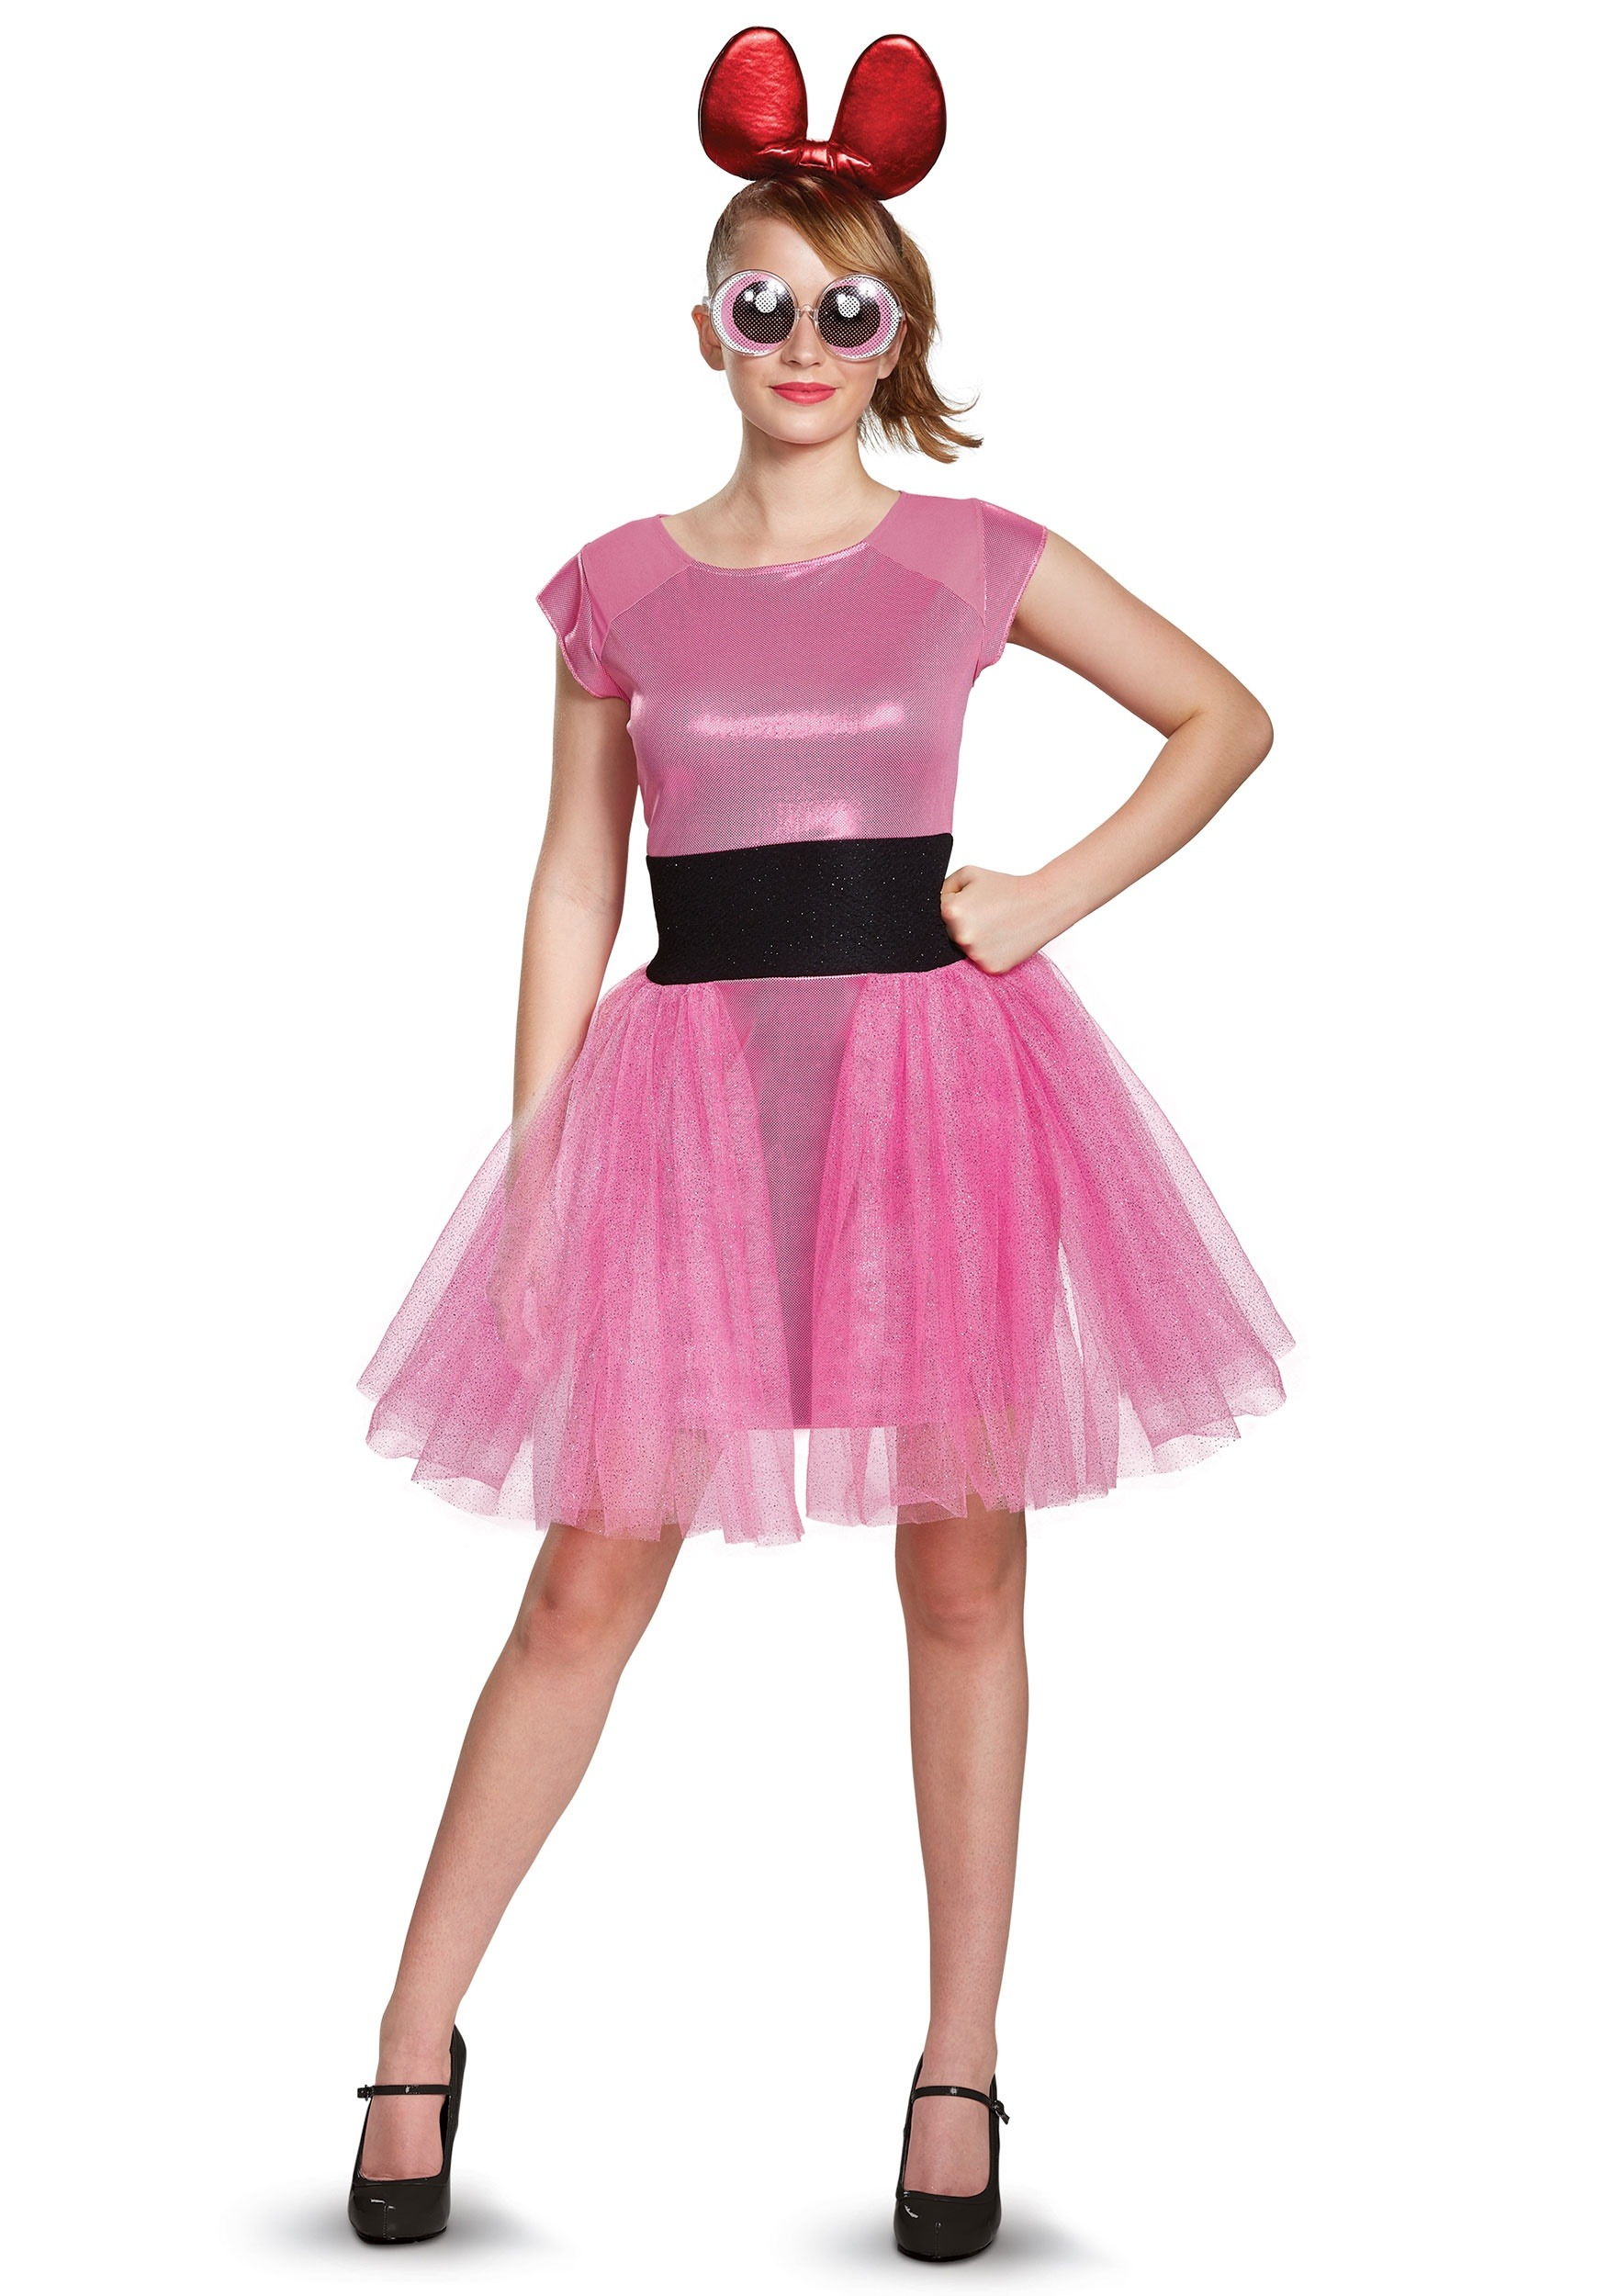 Women's Powerpuff Girls Blossom Deluxe Costume